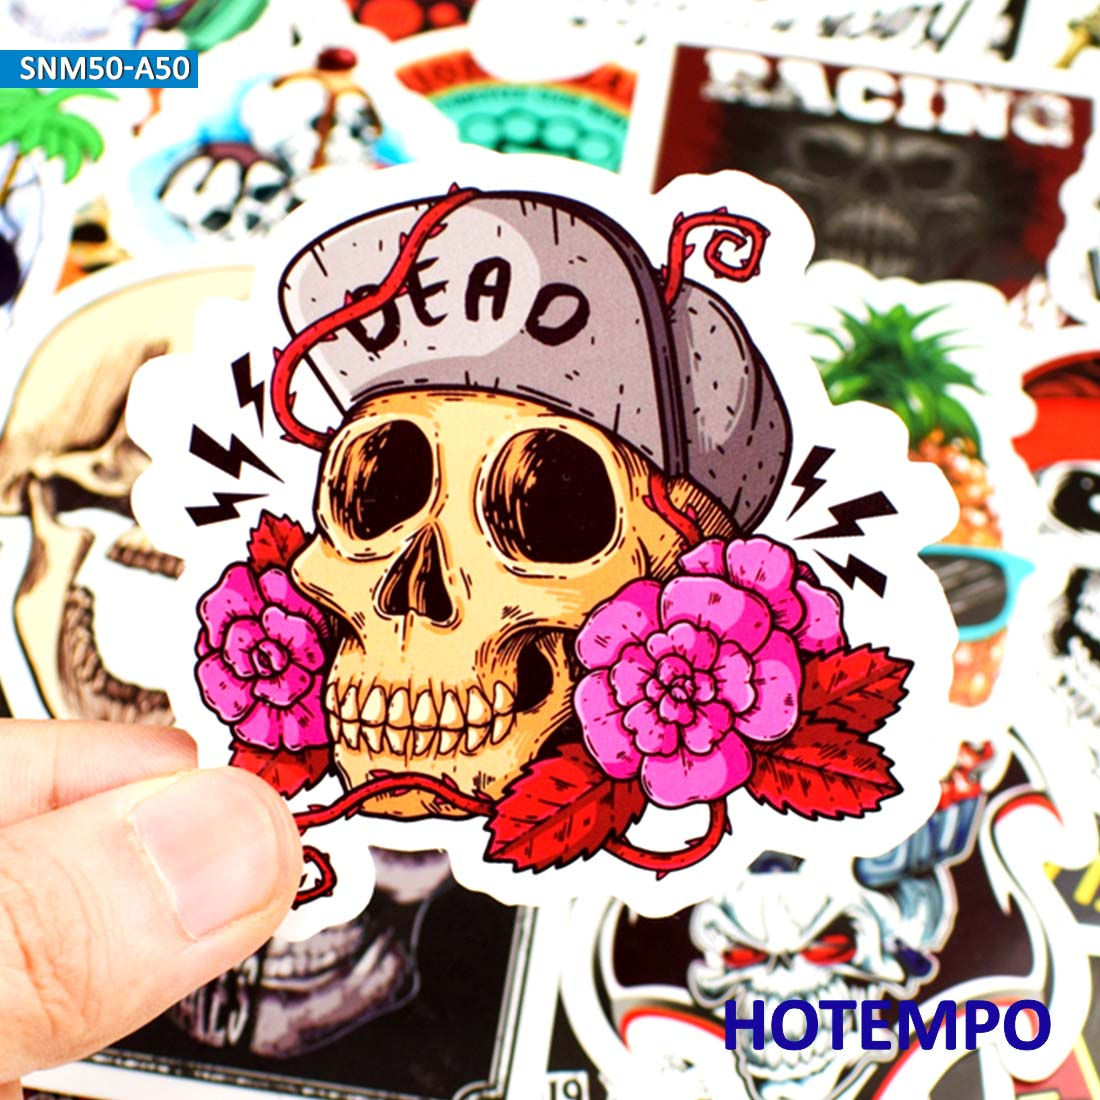 50pcs Spitfire Graffiti Dark Style Skull Horror Comics Stickers For Mobile Phone Laptop Luggage Guitar Skateboard Bike Stickers